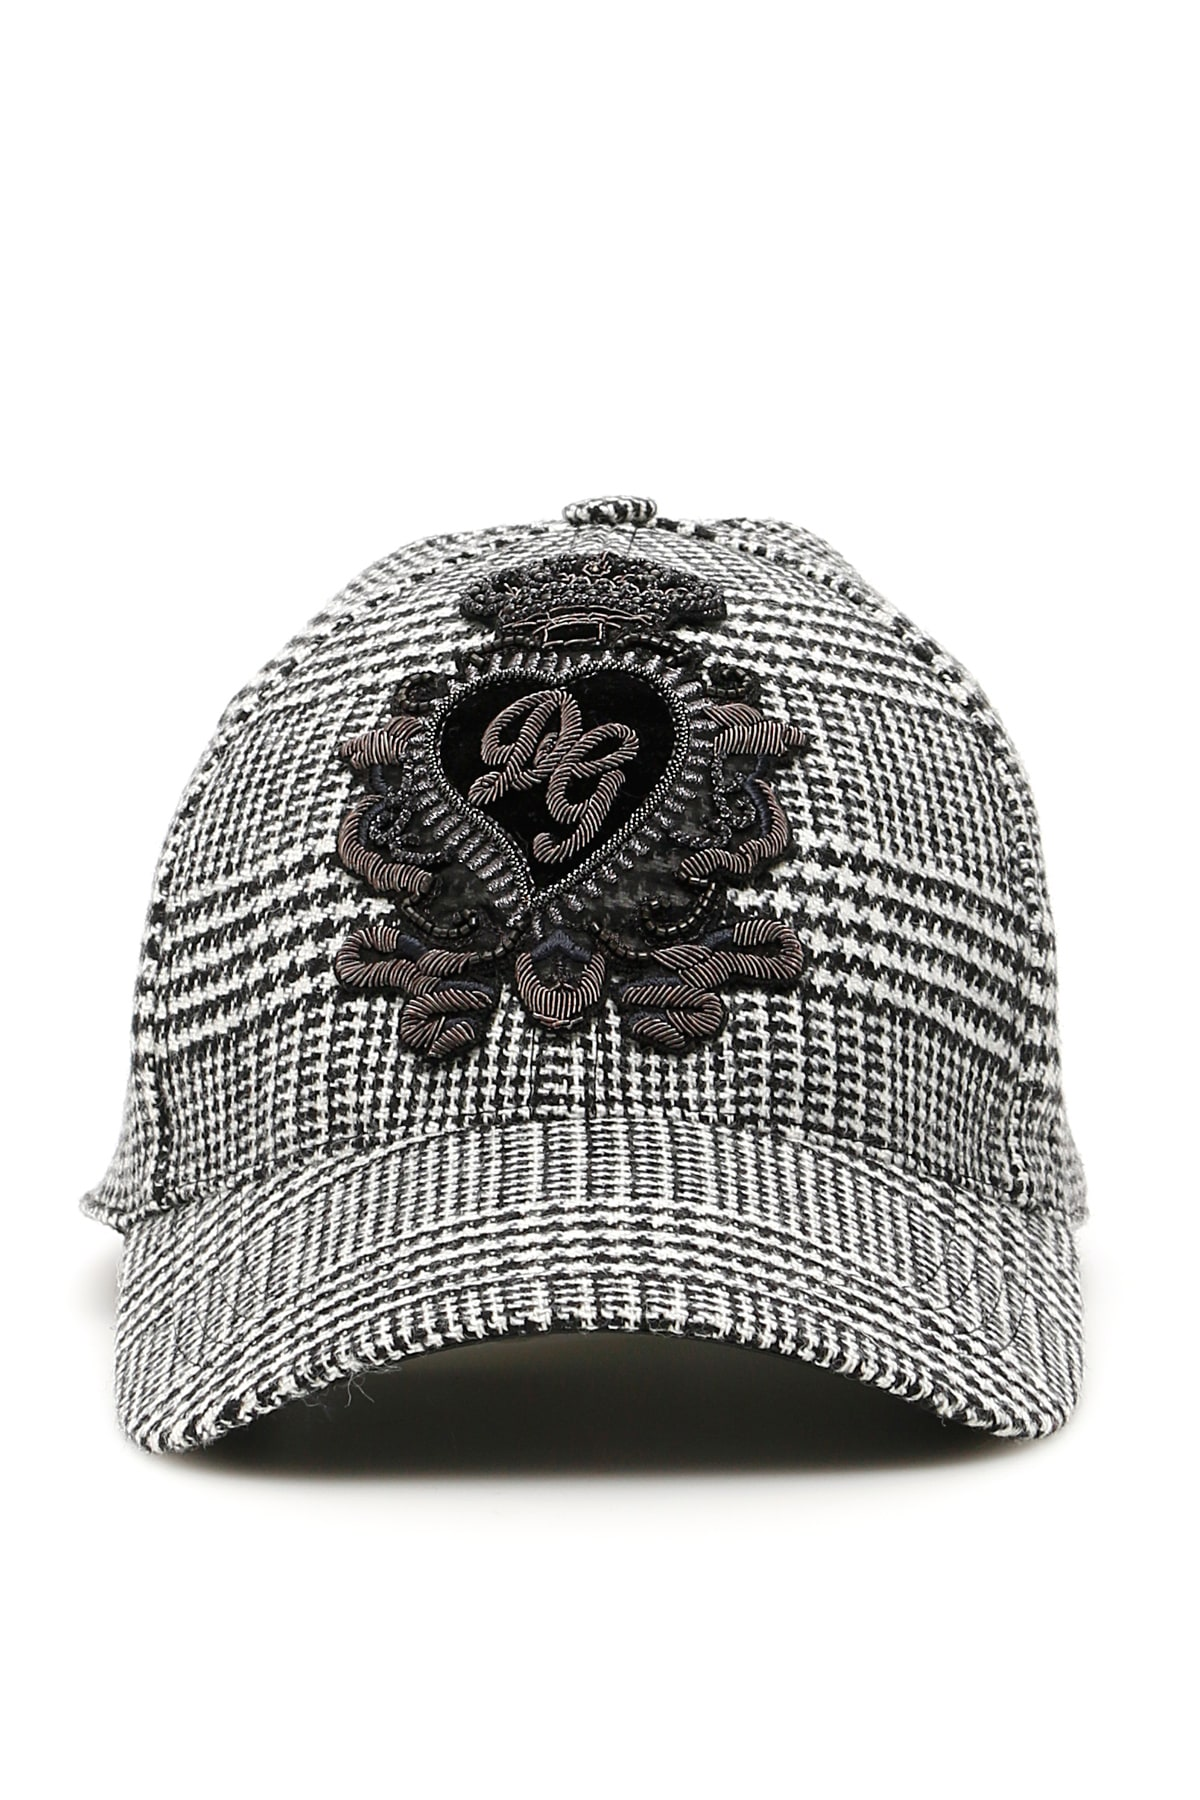 179bc57fa Dolce & Gabbana Prince Of Wales Cap With Dg Patch